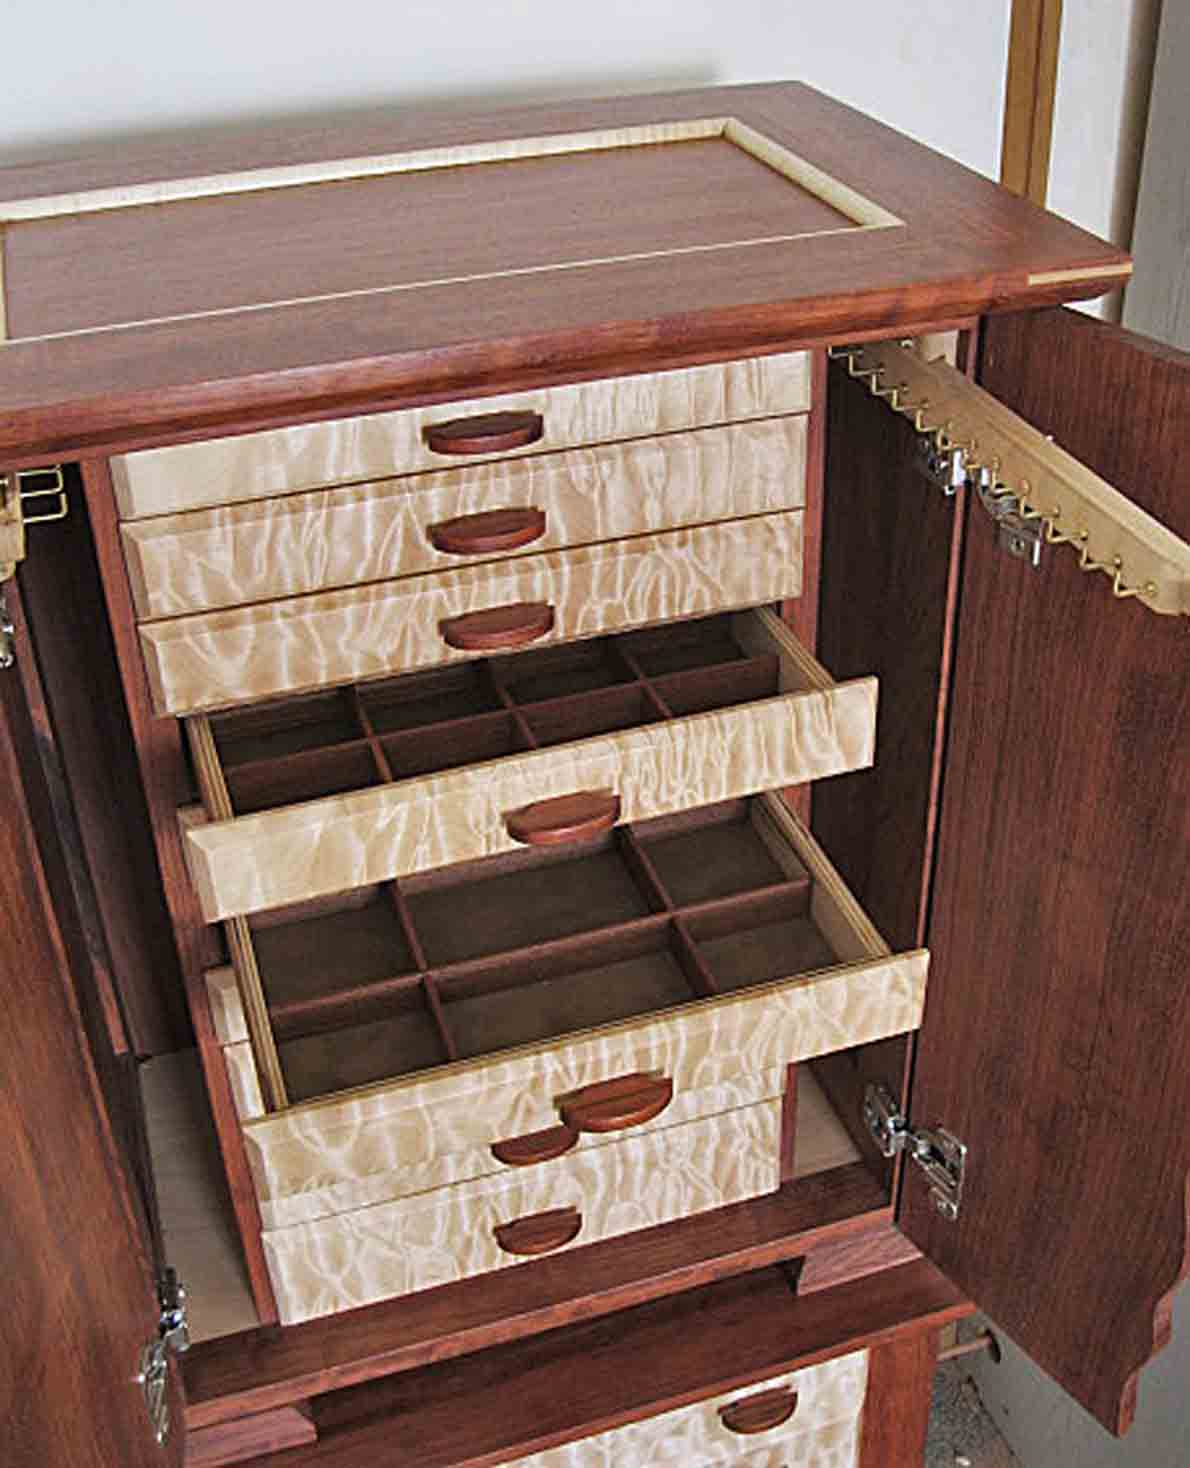 Handmade wooden jewelry box with lots of storage